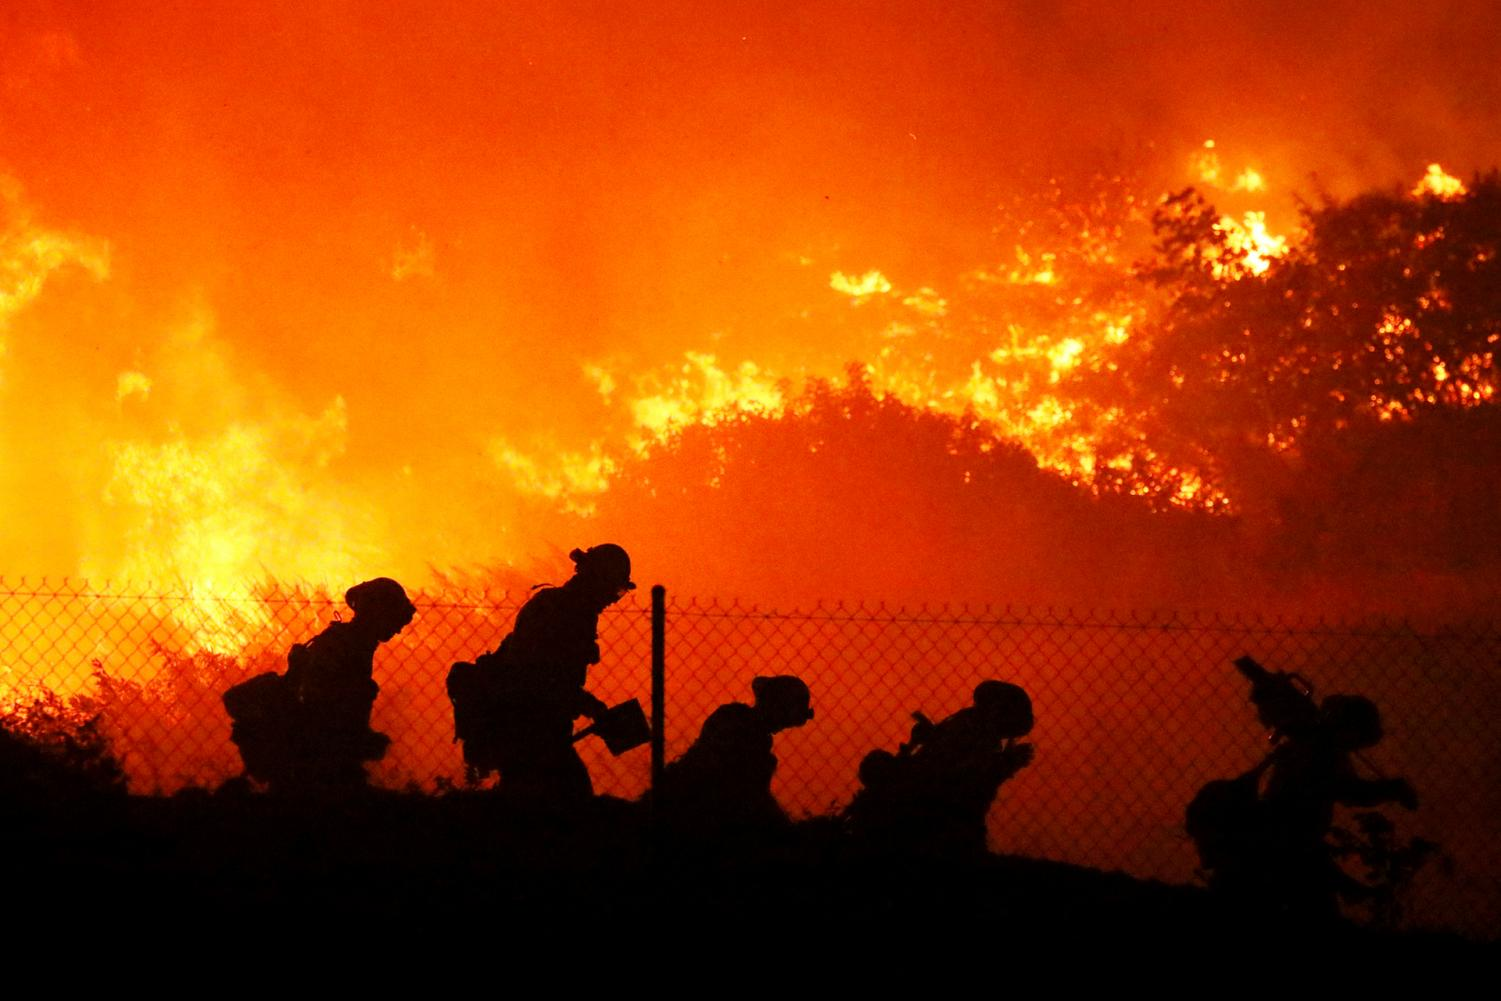 Firefighters working to contain the Saddleridge Fire in the San Fernando Valley. Photo courtesy of Associated Press.